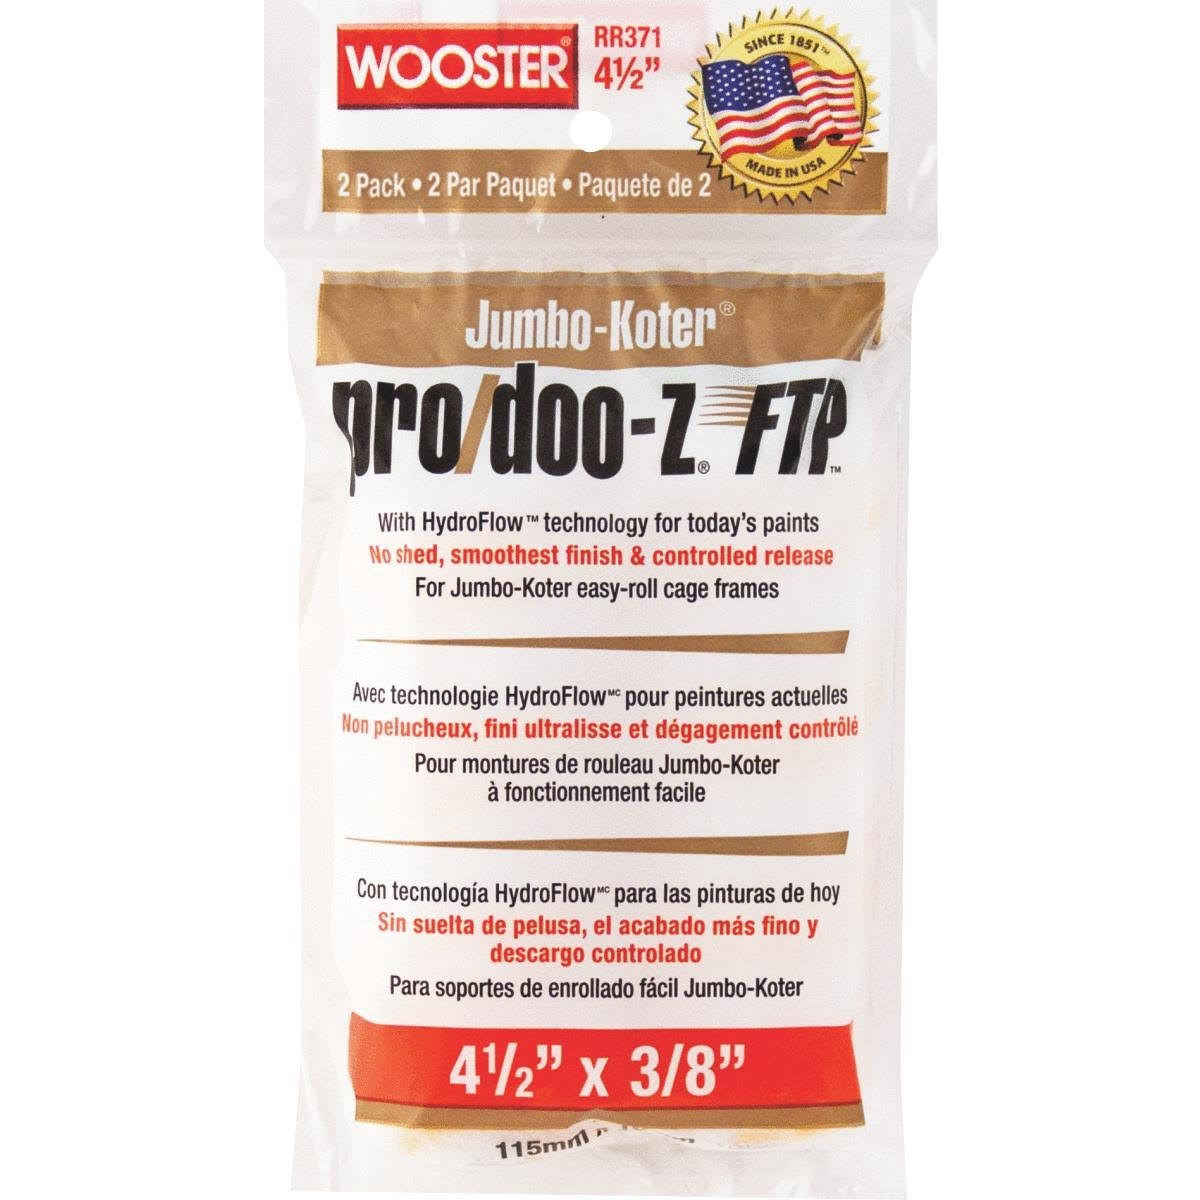 Wooster Paint Roller Cover, Jumbo-Koter Pro/Doo-Z FTP, 2-Pack, 3/8-In.